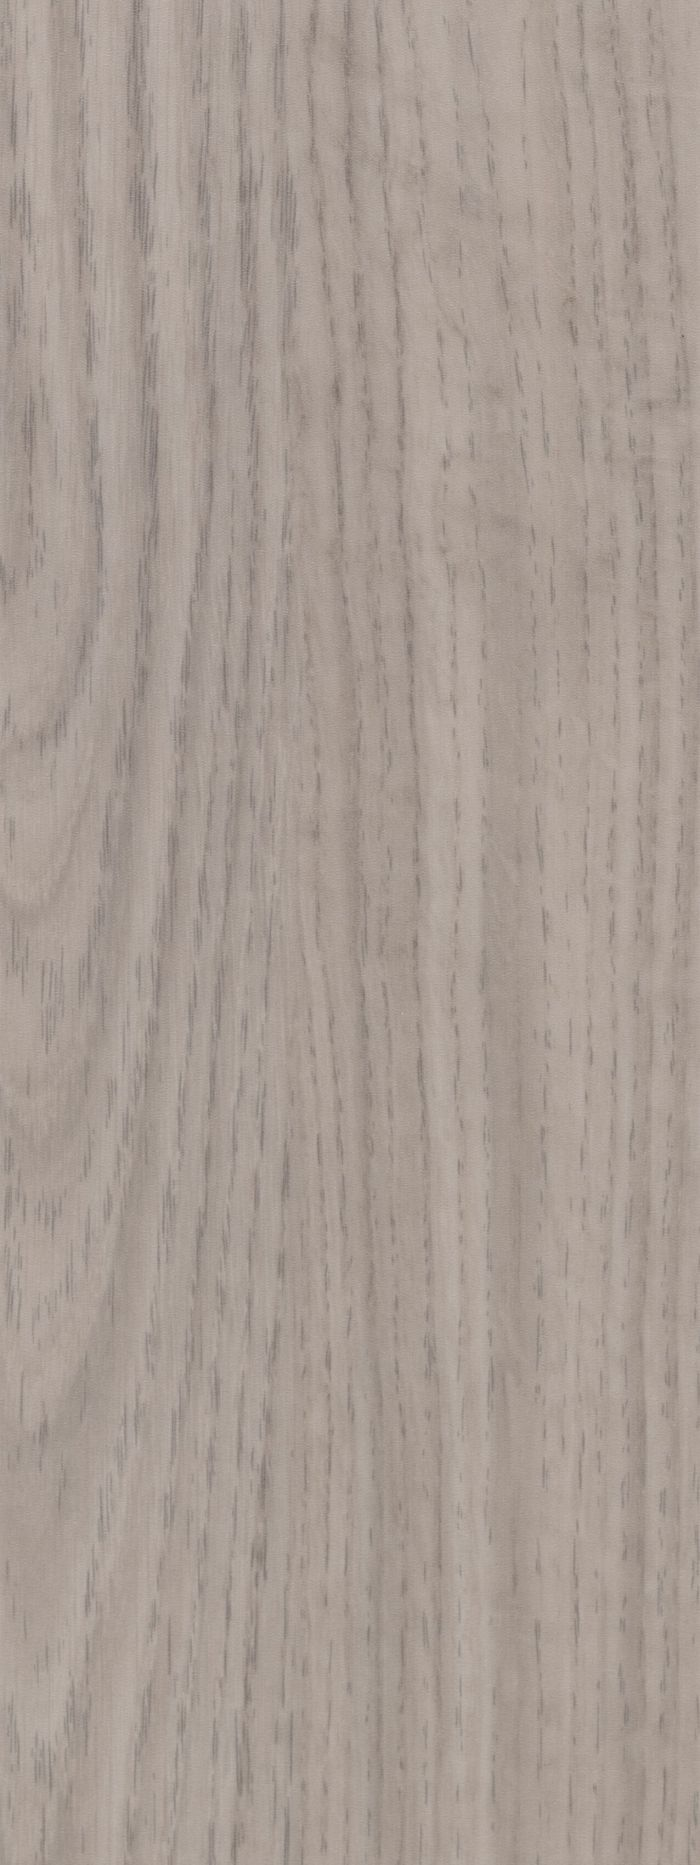 Allura Dryback  - Grey waxed oak Hout